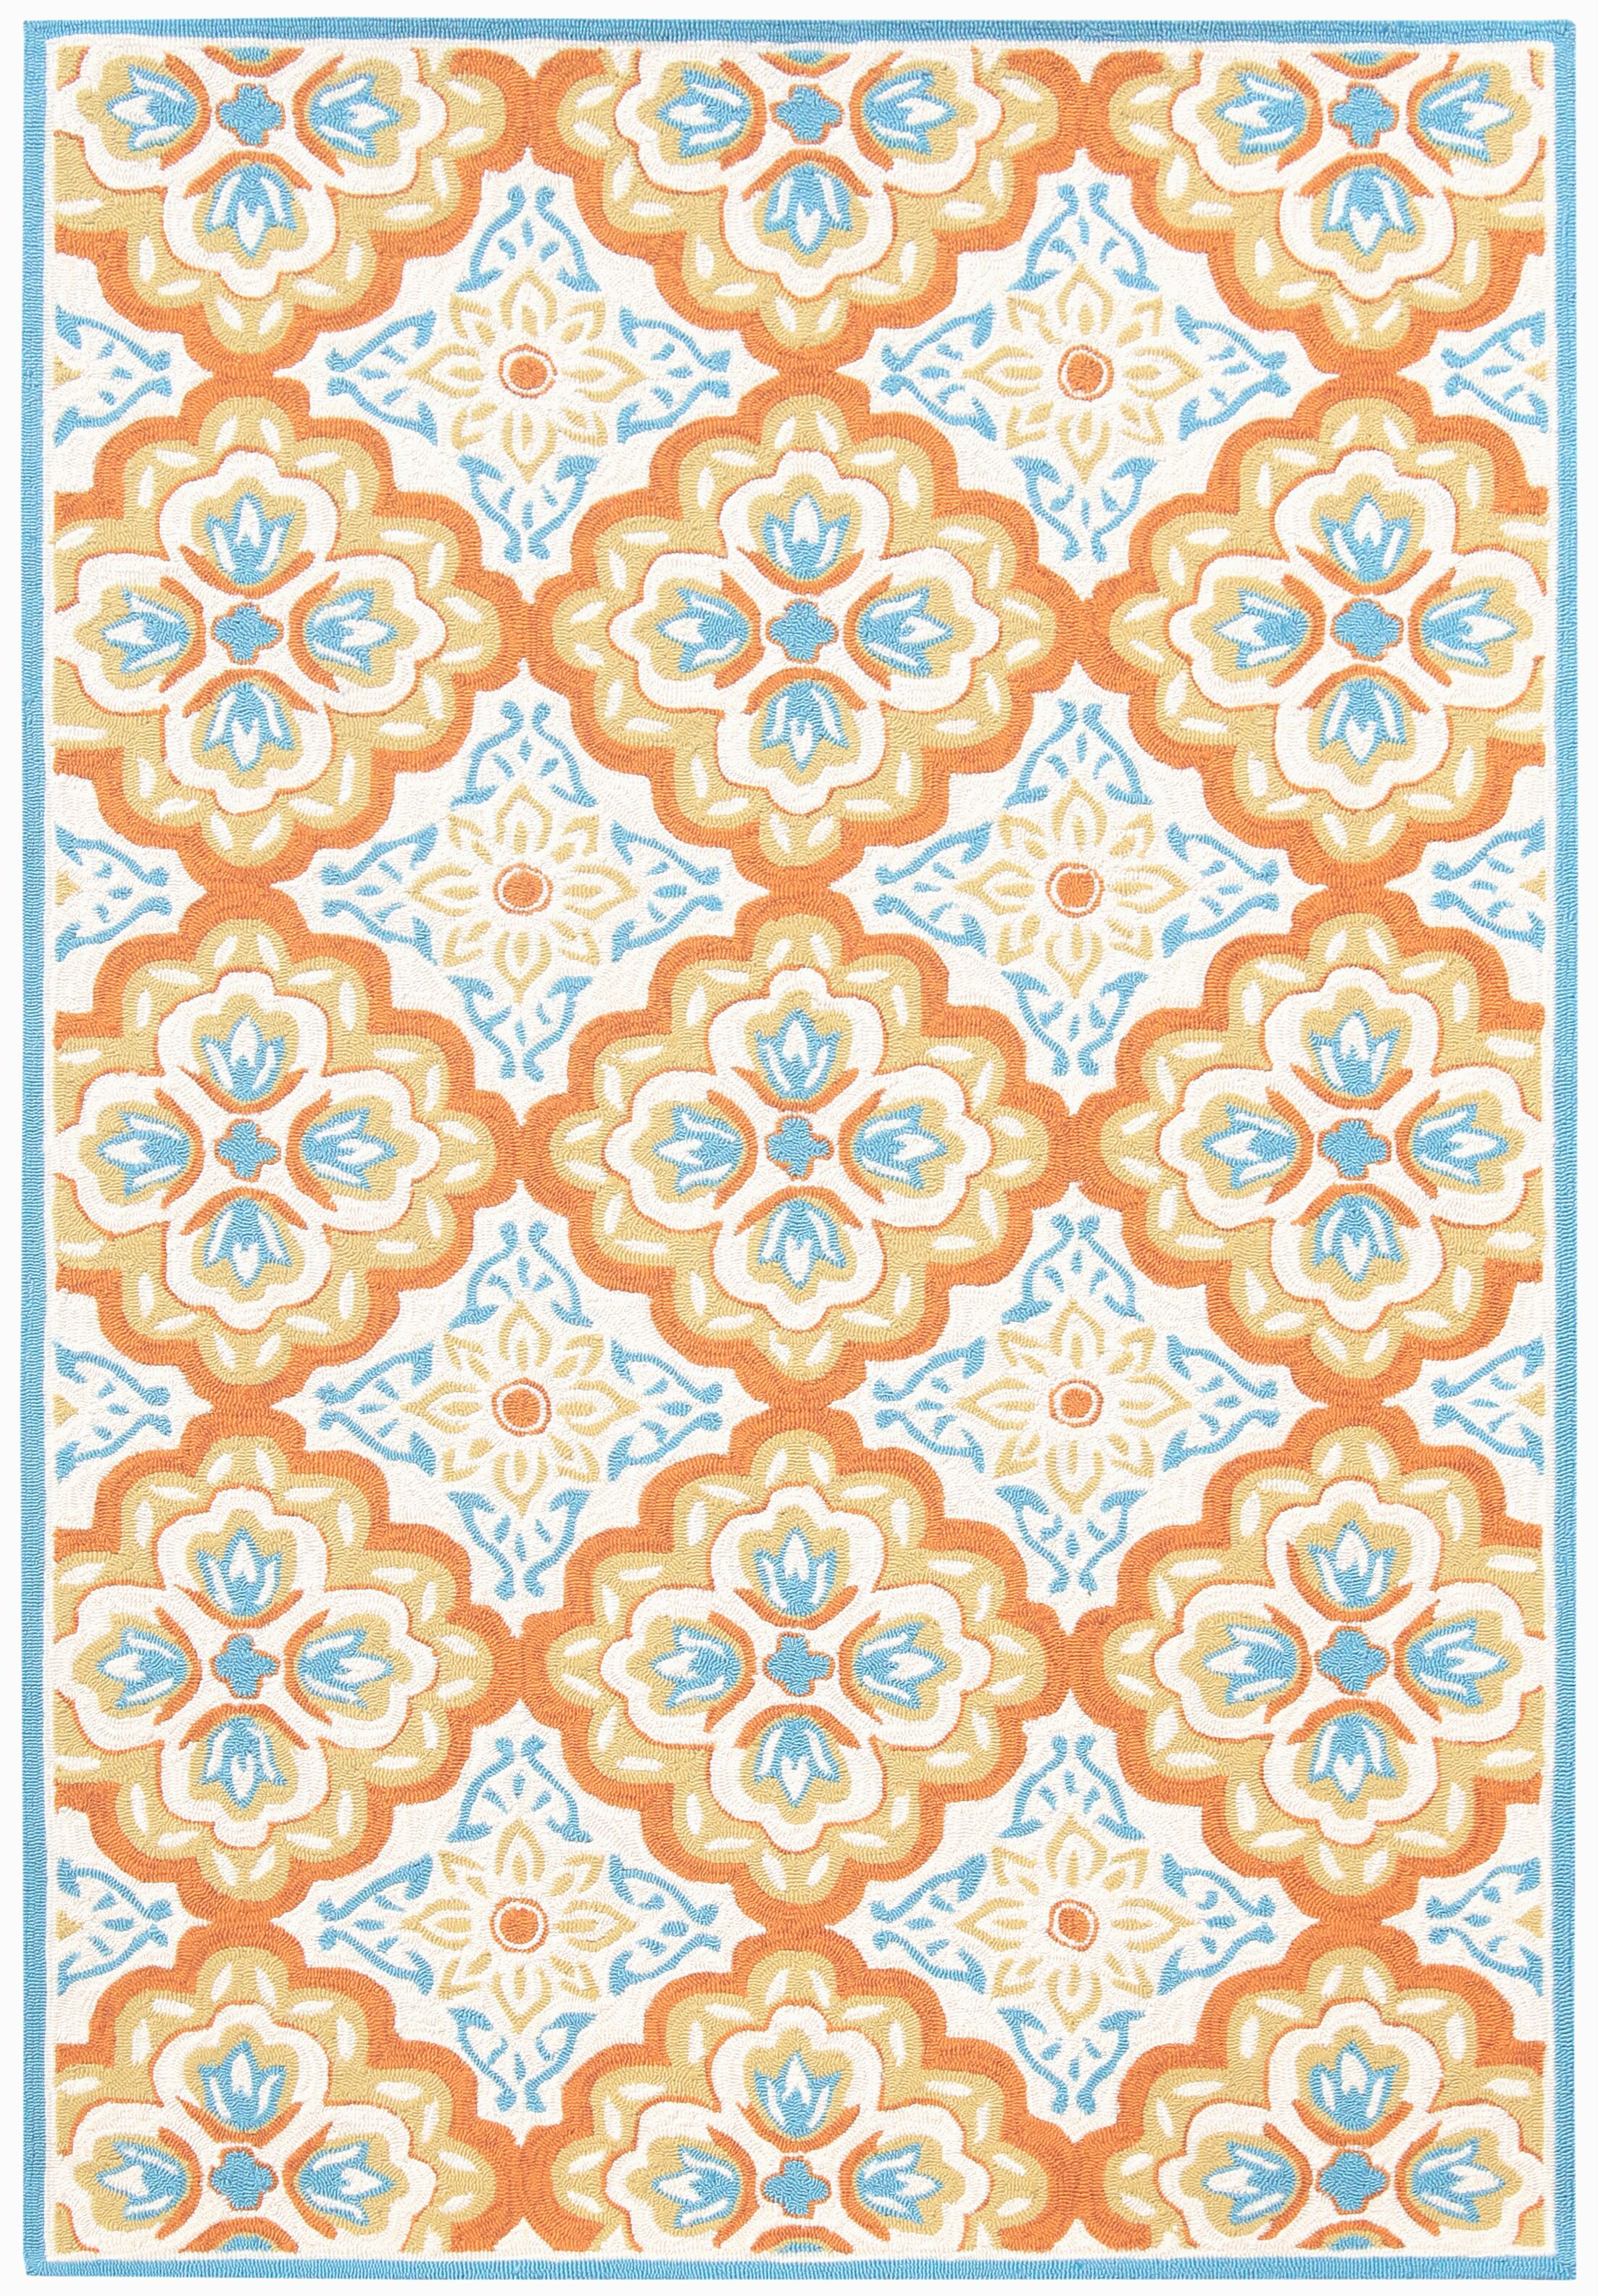 New Hartford Orange Indoor/Outdoor Area Rug Rug Size: Rectangle 4'x6'